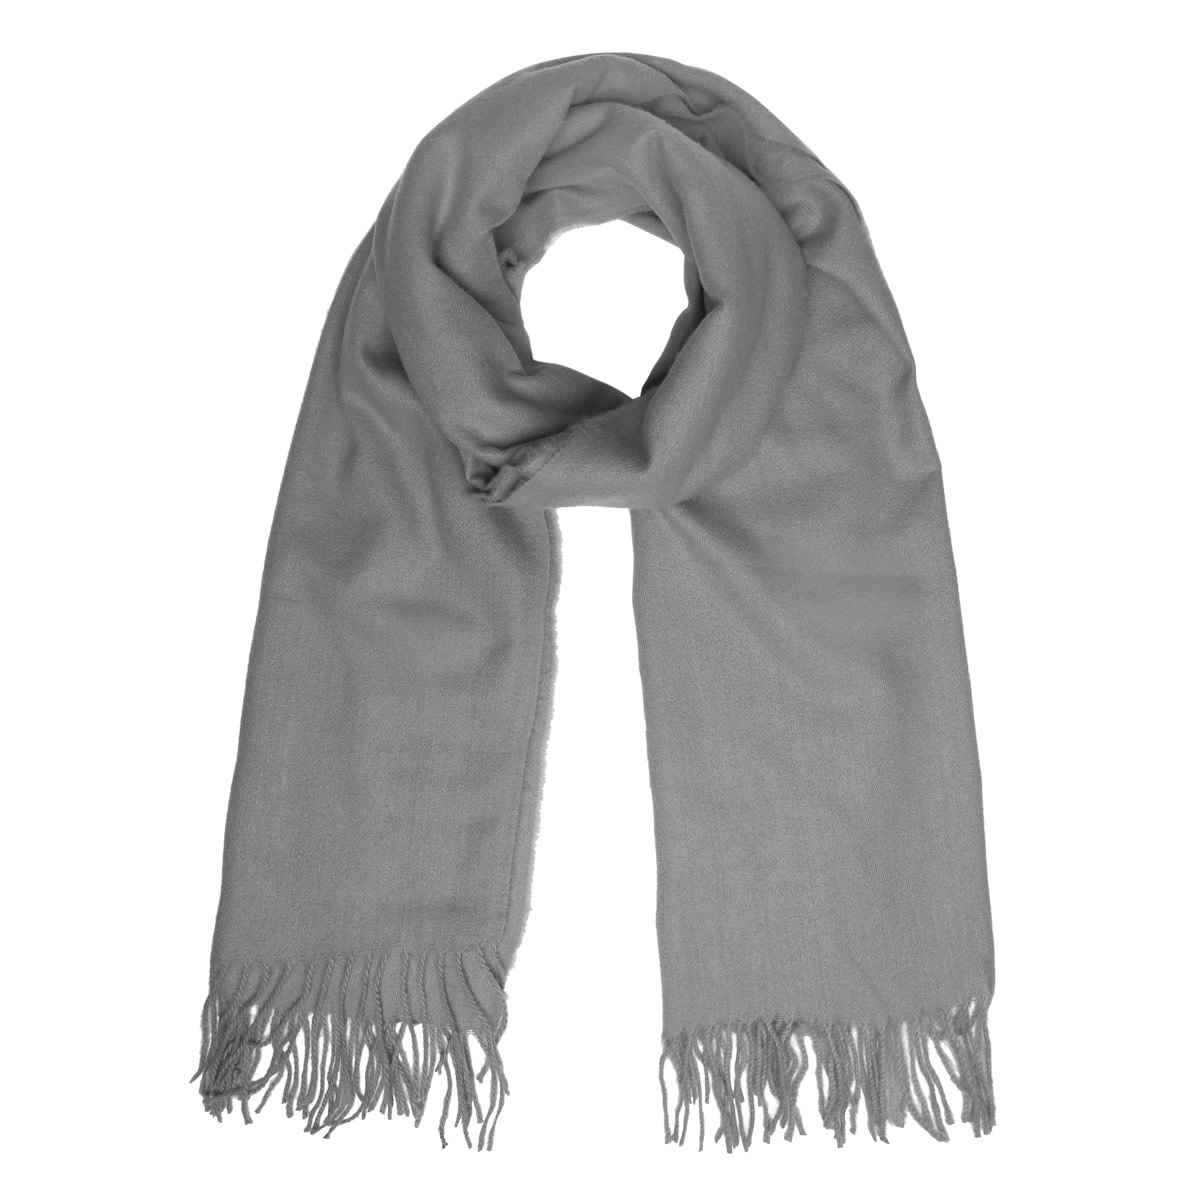 With love Scarf chilled grey